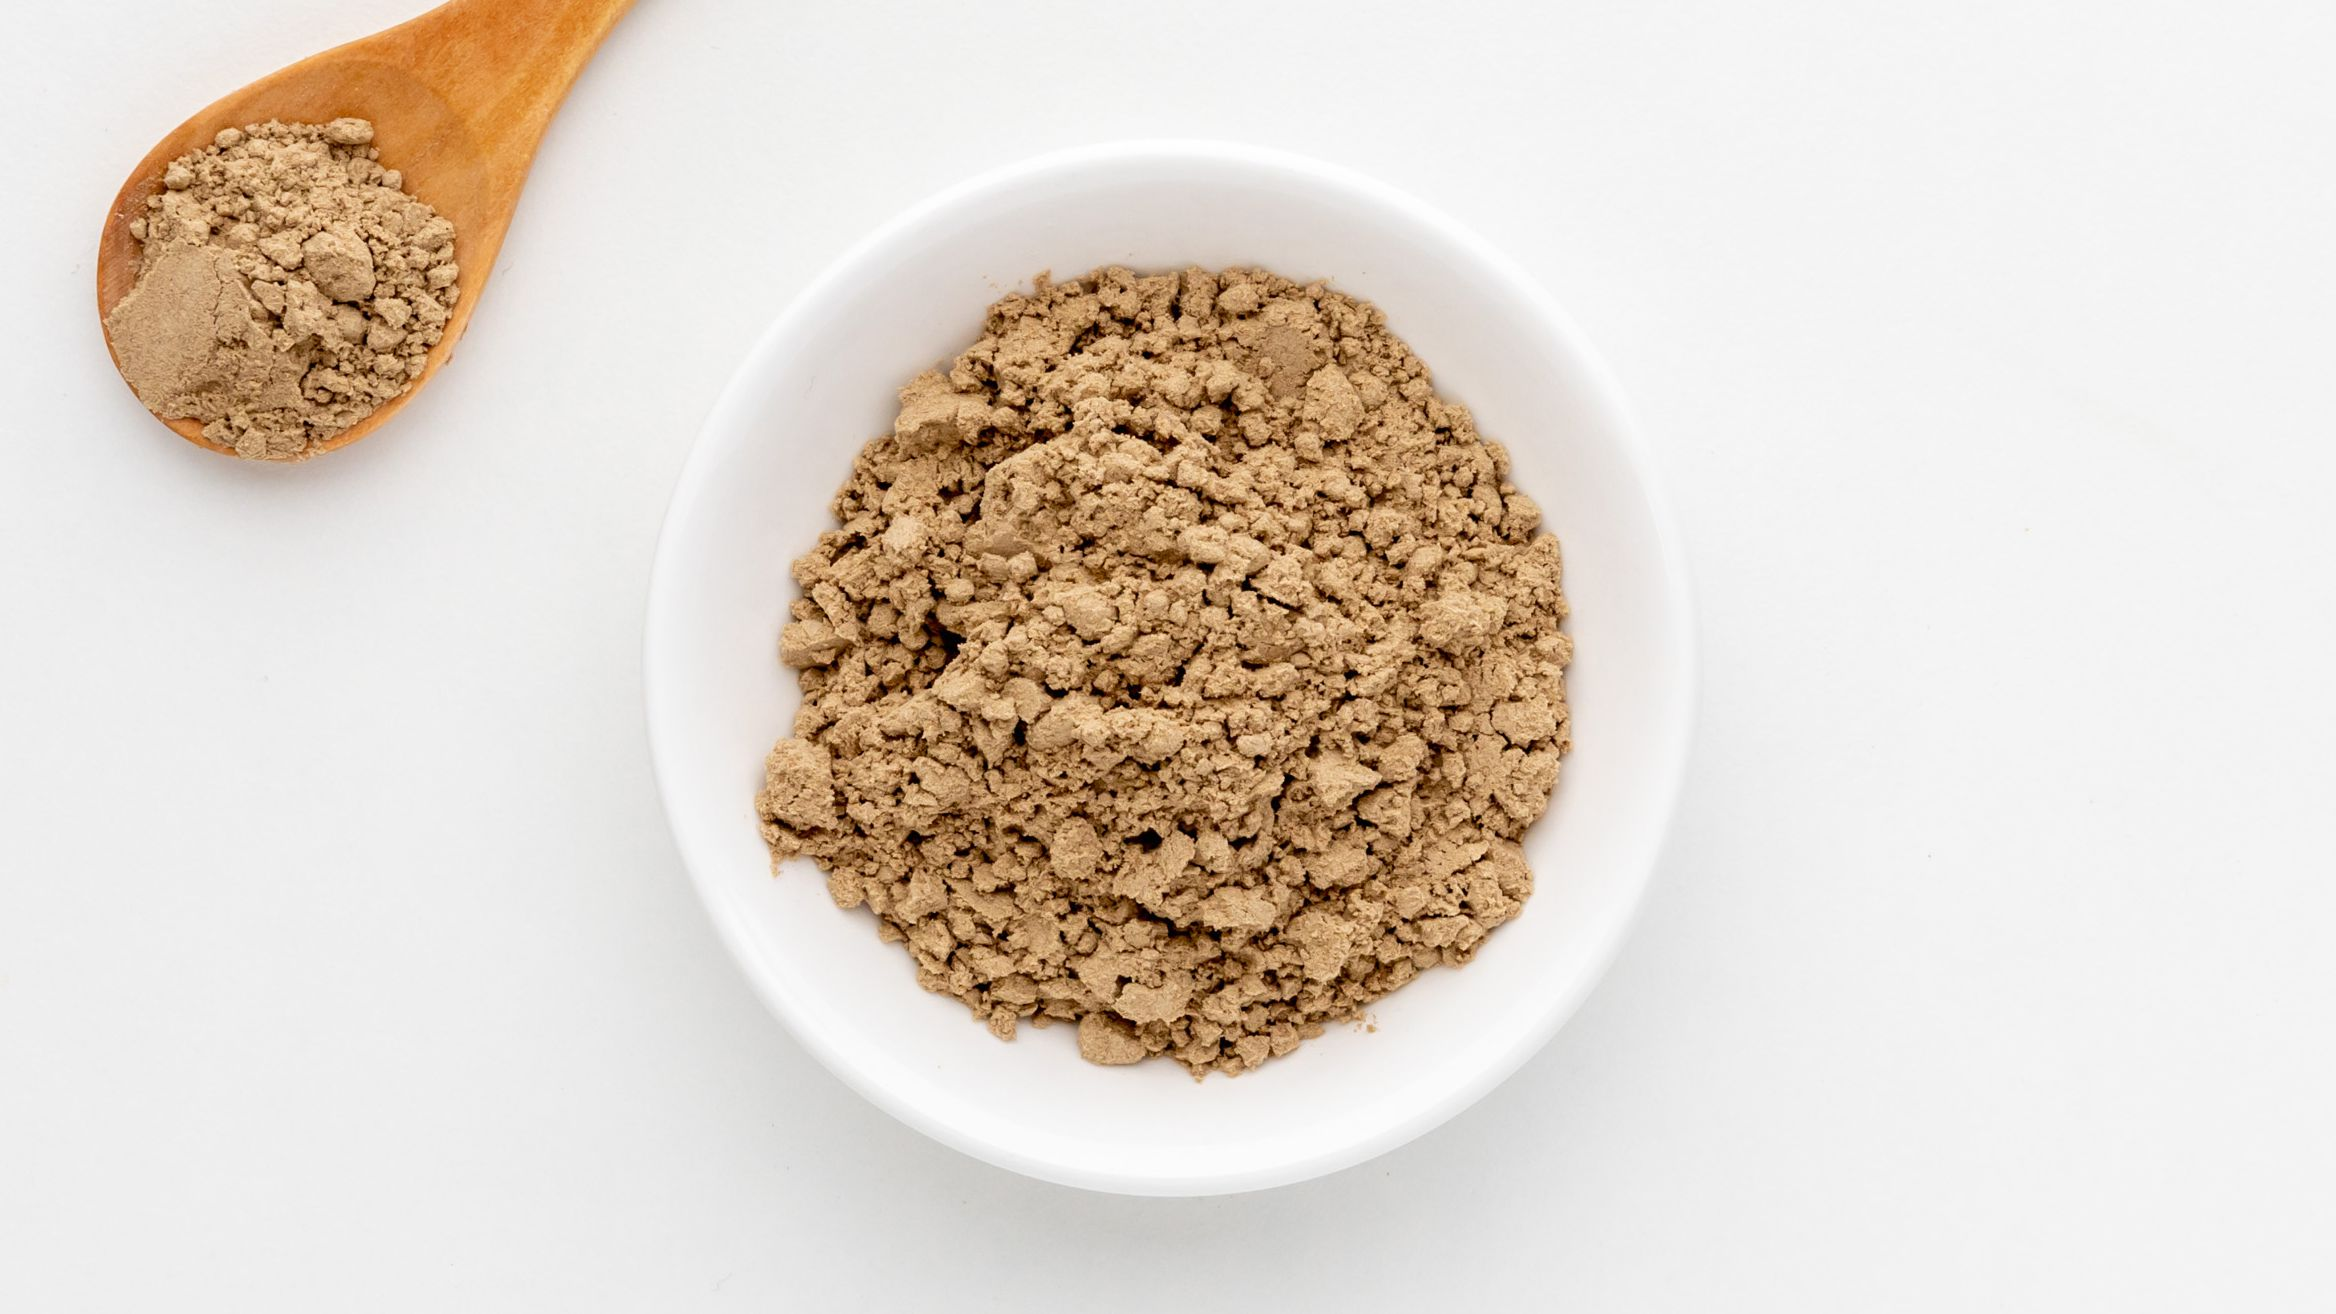 Cricket Flour: What It Tastes Like and Nutrition Facts